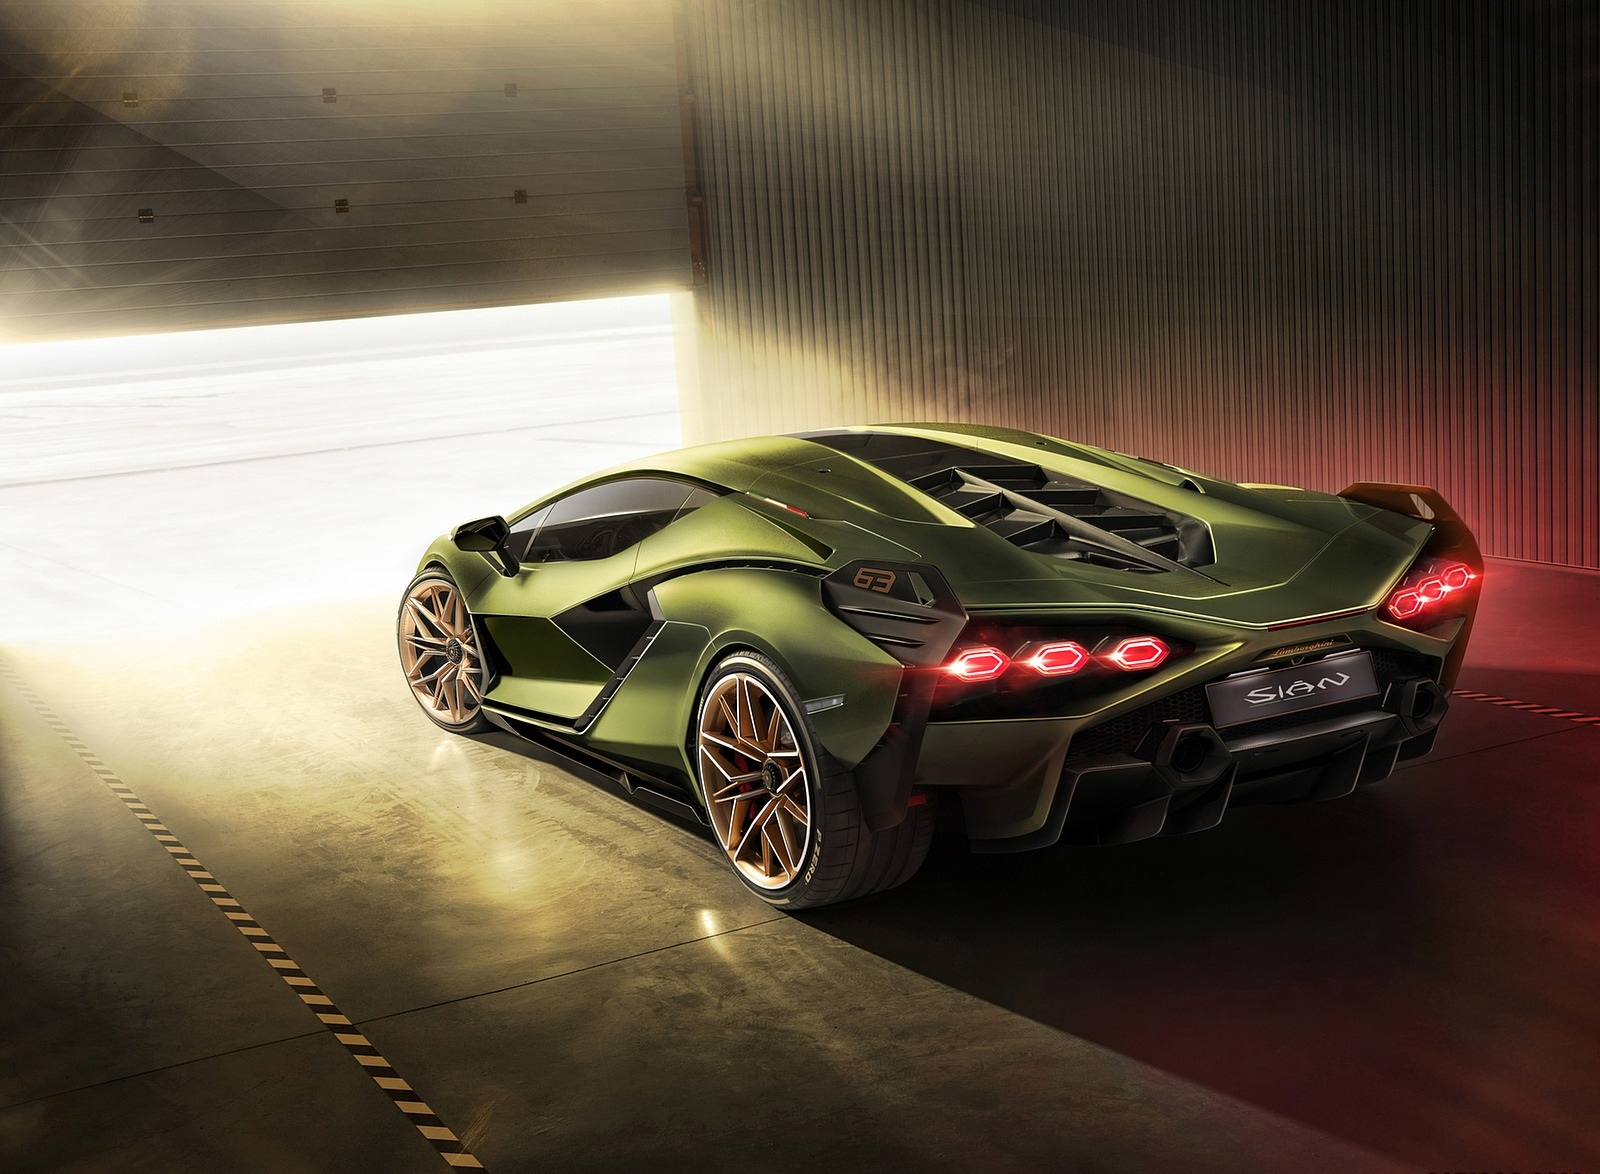 2020 Lamborghini Sián Rear Three-Quarter Wallpapers #11 of 18